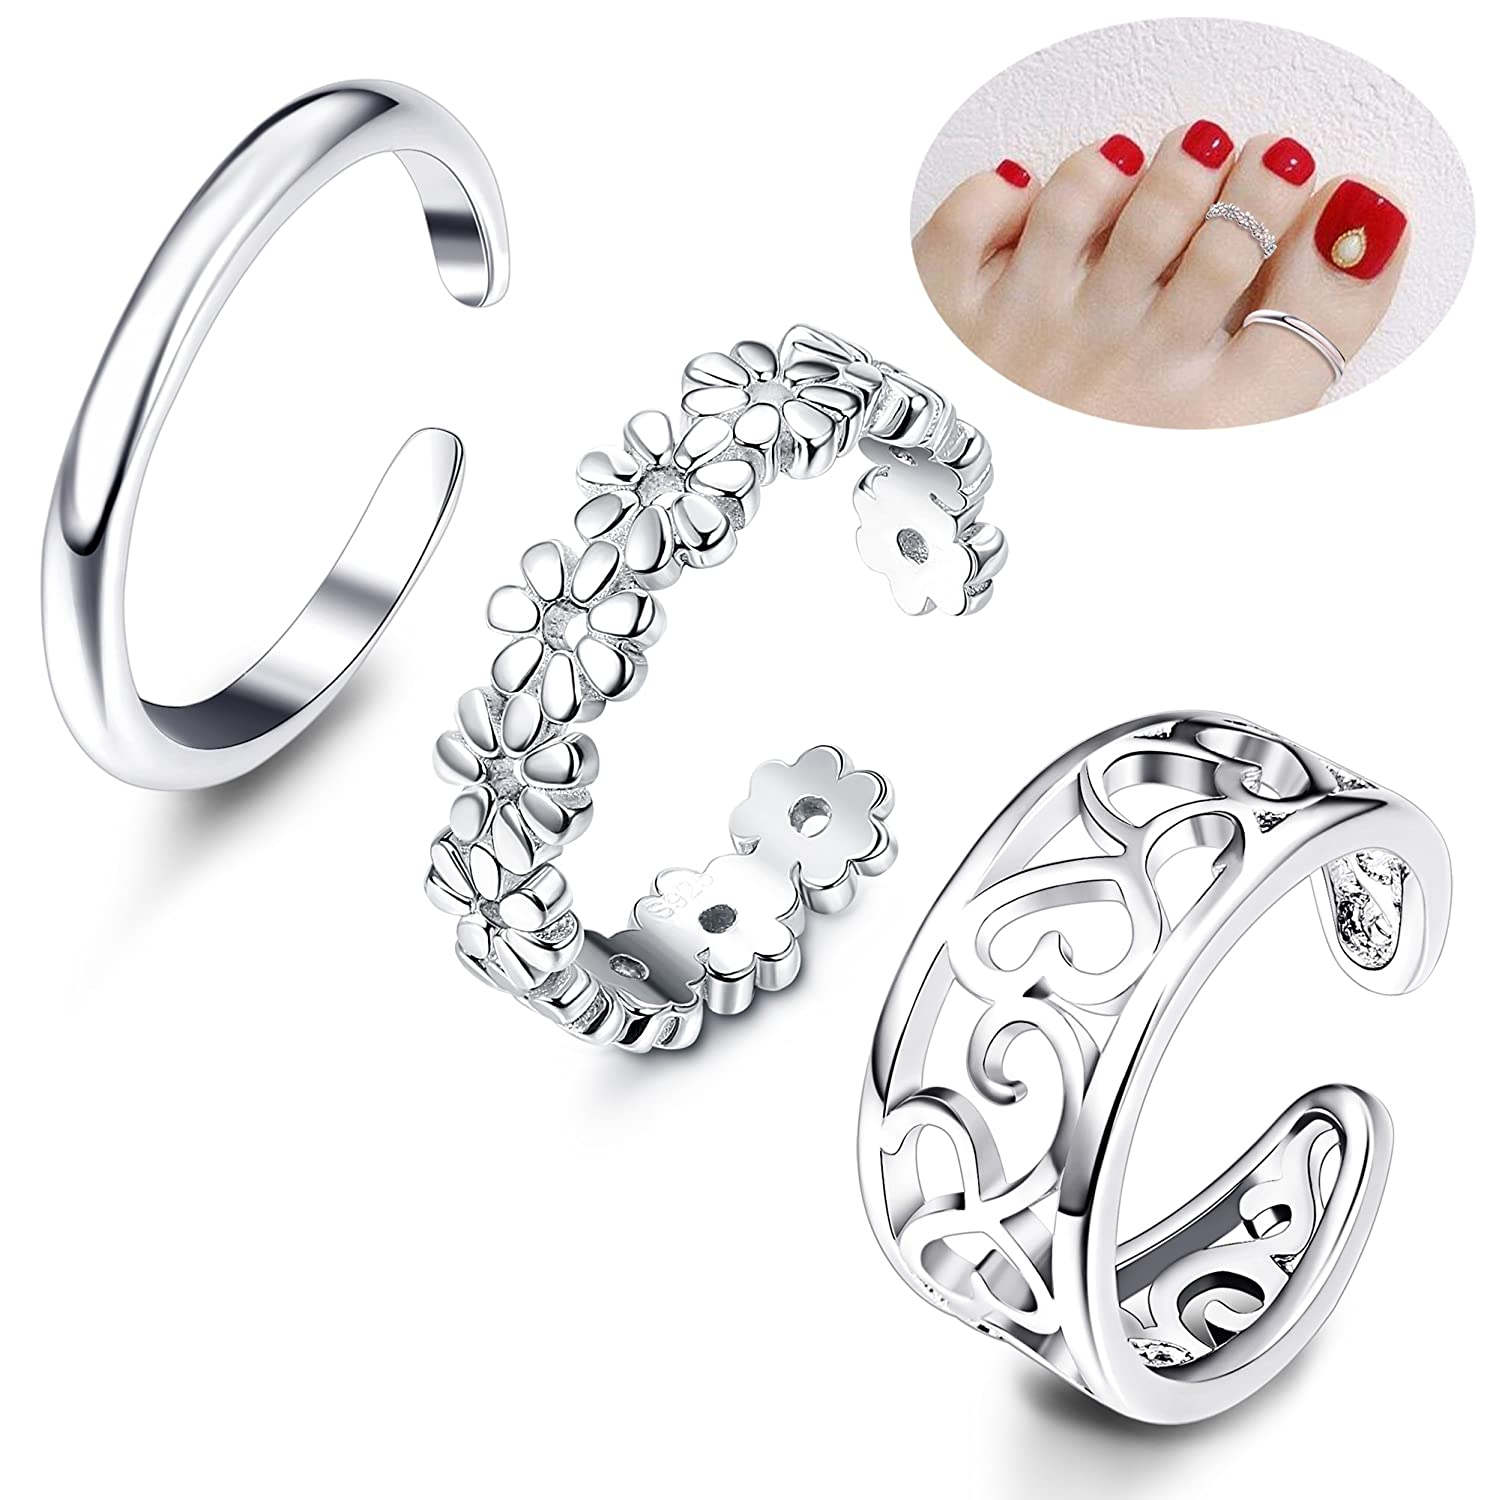 Besteel 3Pcs Toe Rings Women Girls Adjustable Open Toe Ring Gifts Jewelry Set J2L-WTR-3